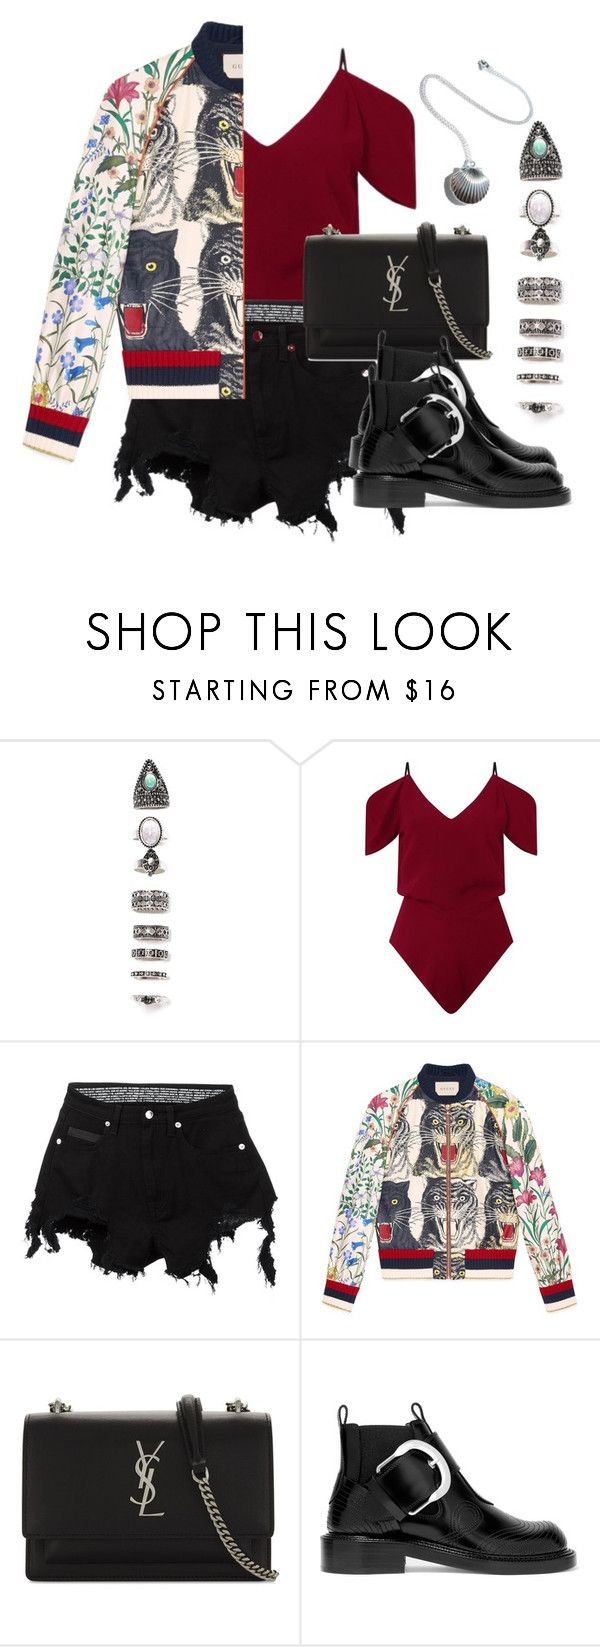 """""""Untitled #227"""" by ksalma ❤ liked on Polyvore featuring Nasty Gal, Roland Mouret, County Of Milan, Gucci, Yves Saint Laurent and Maison Margiela"""